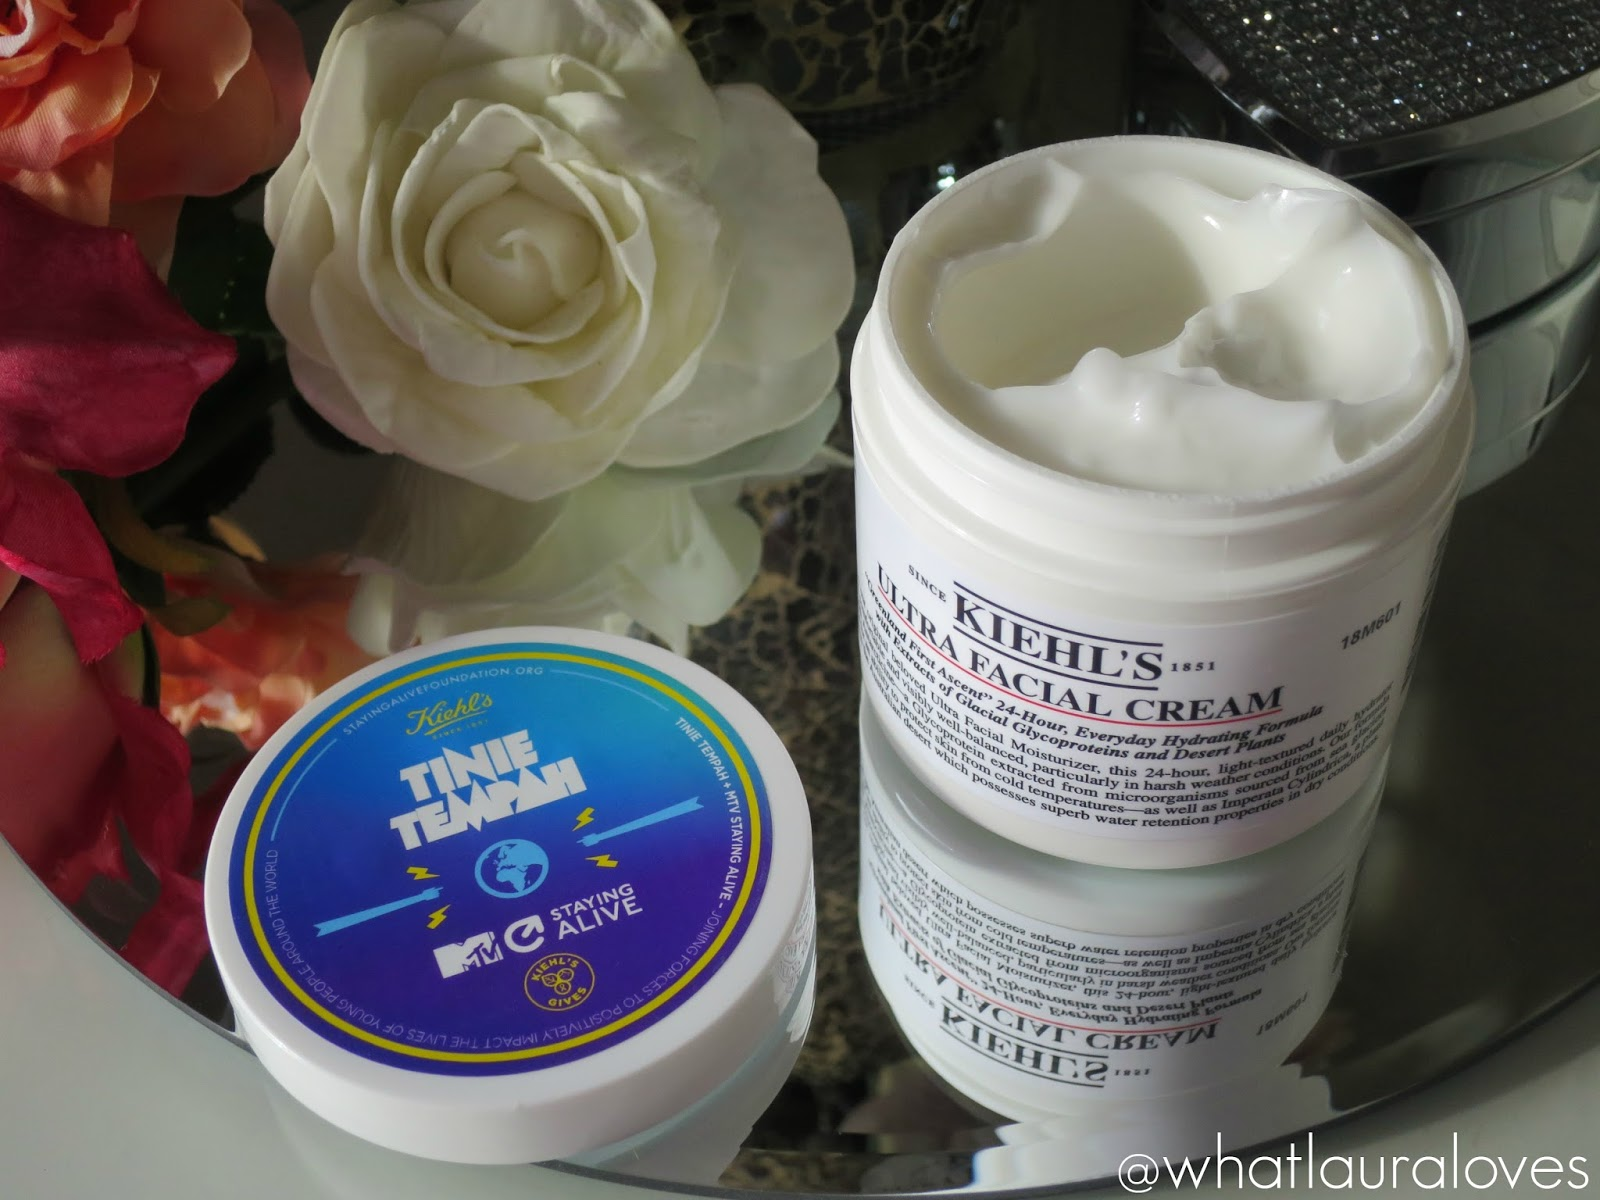 Kiehls Ultra Facial Cream MTV Staying Alive Tinie Tempah HIV AIDS Charity